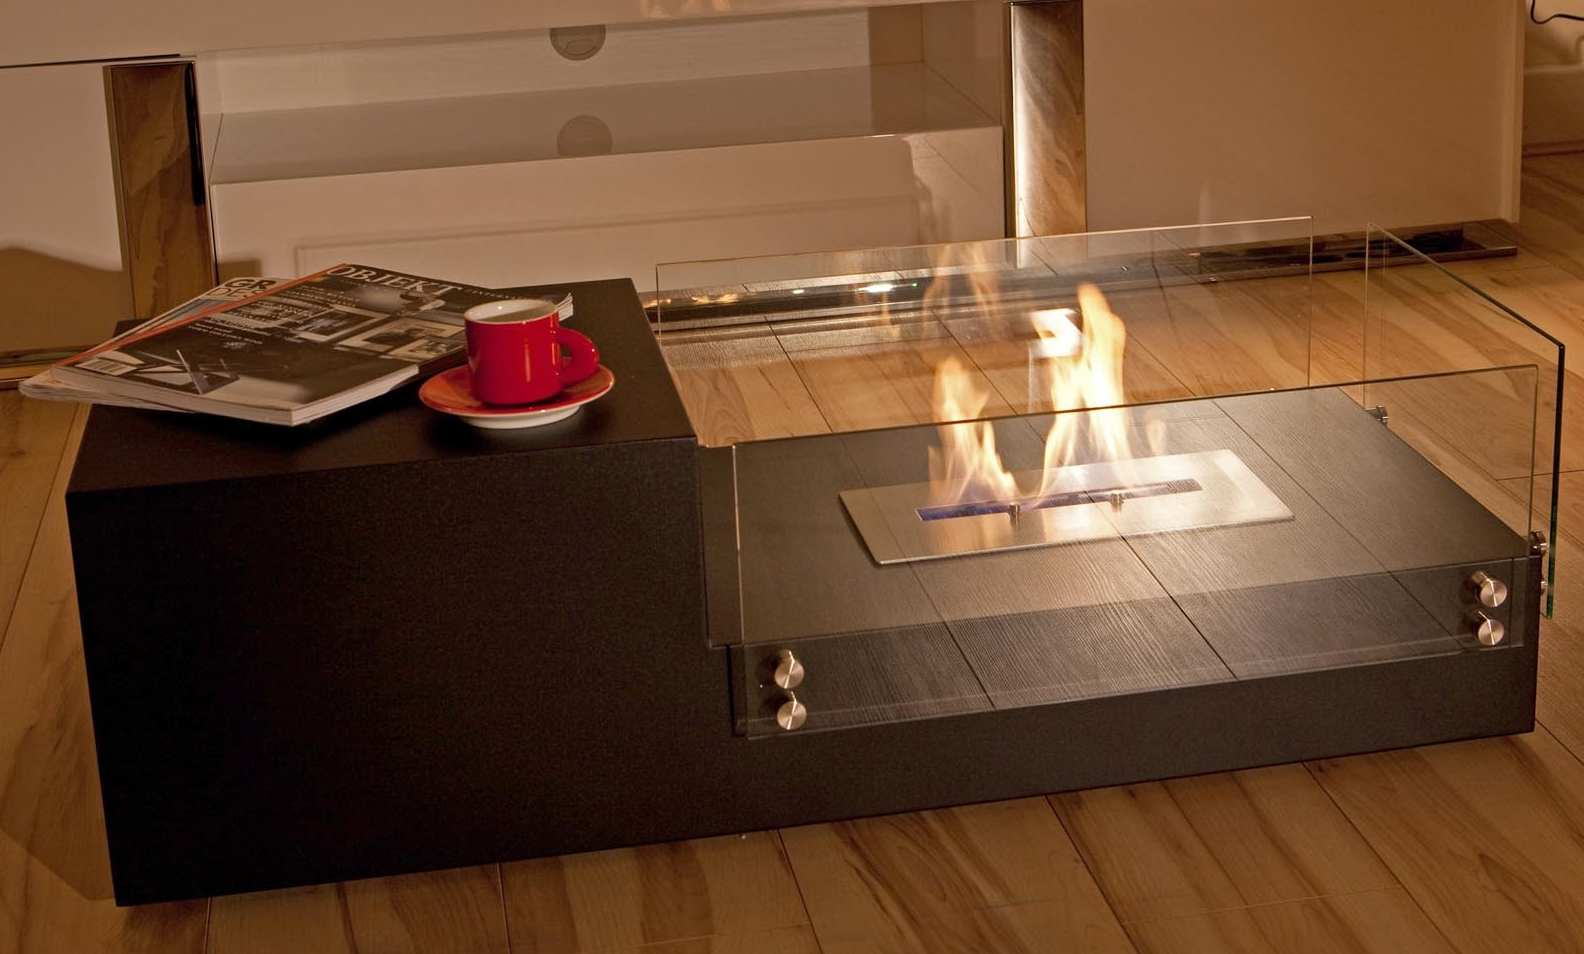 The Naked Flame Dual Bio Ethanol Freestanding Fire Table